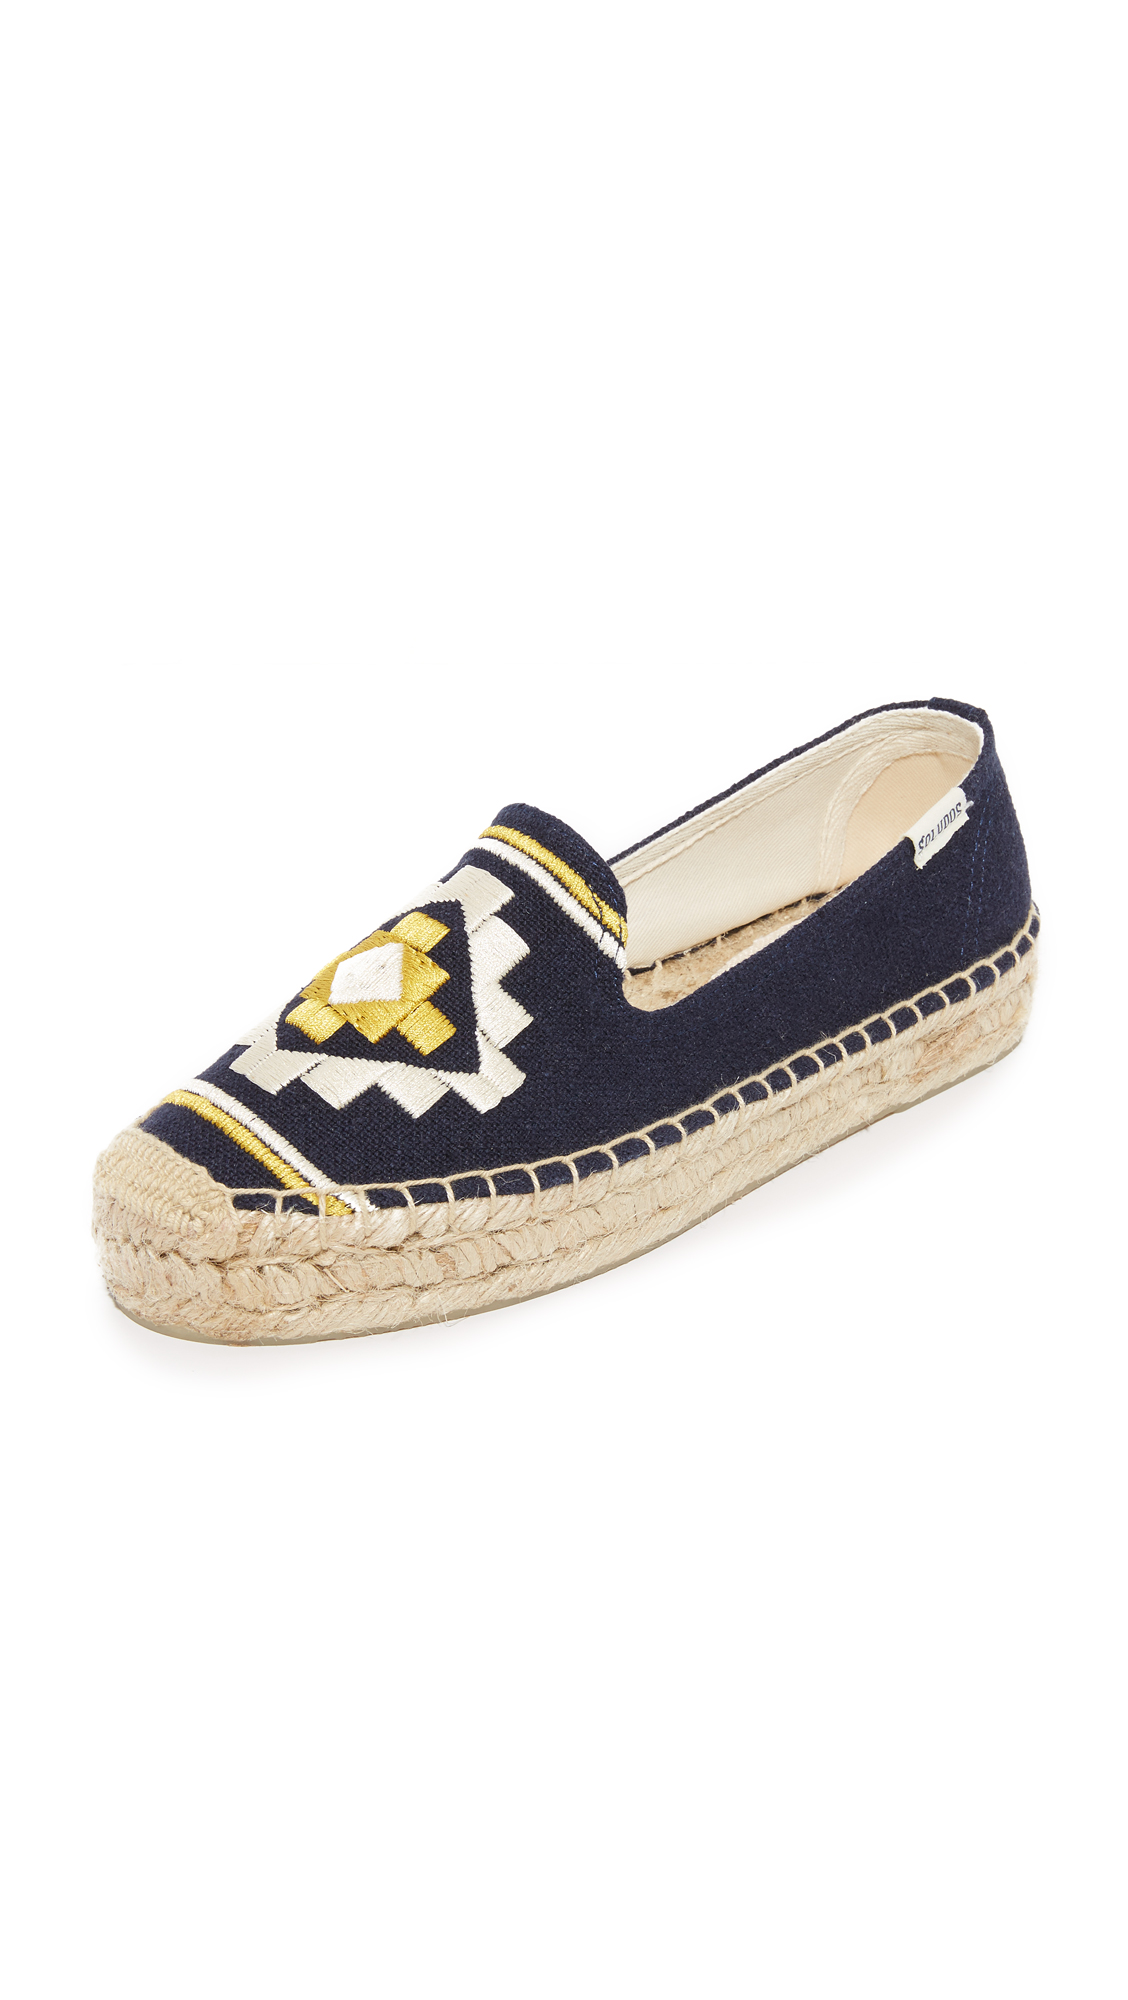 soludos female soludos embroidered platform smoking slippers navy